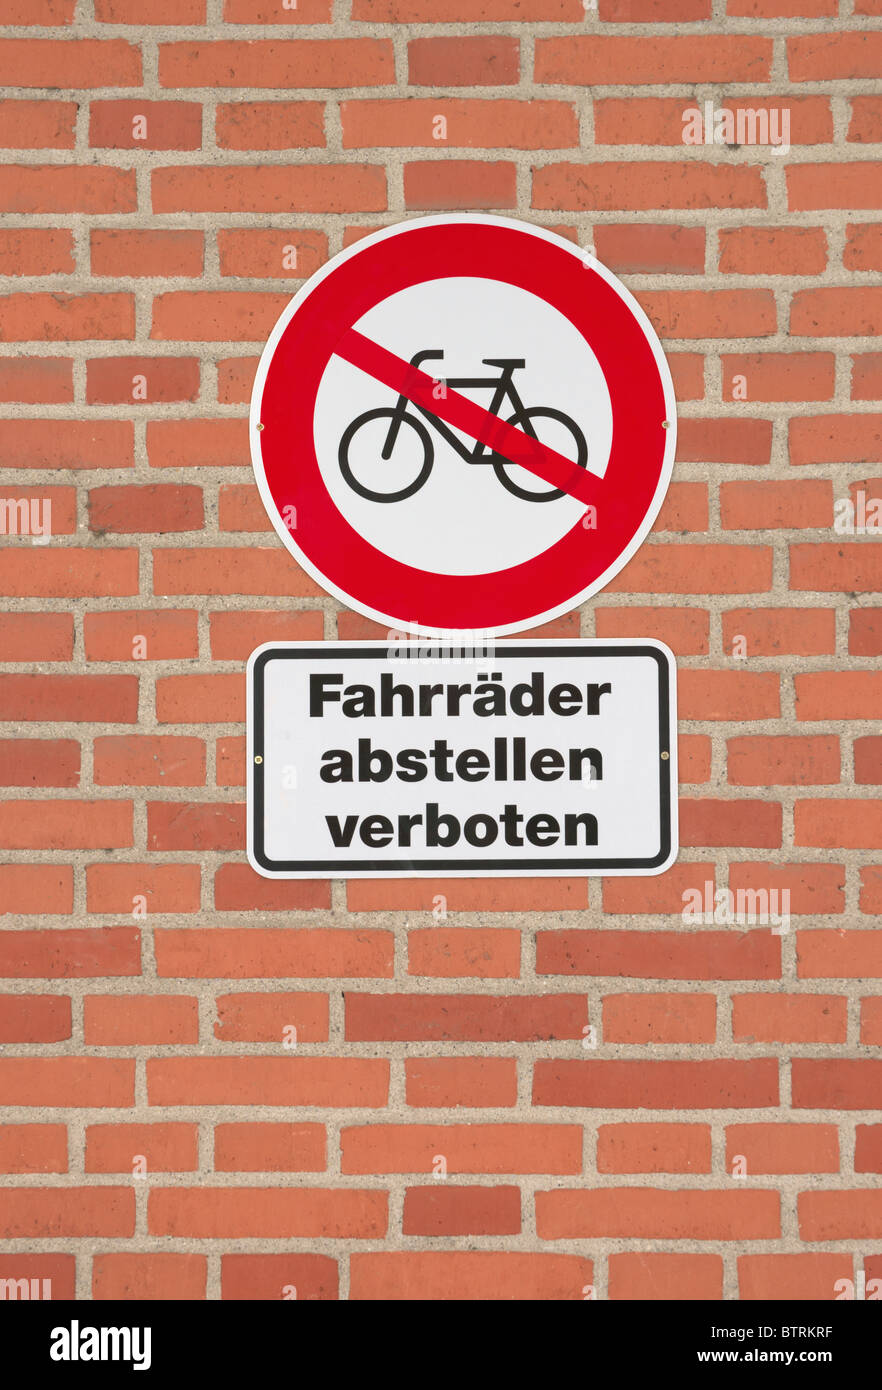 No bicycles sign, Fahrrader abstellen verboten, Bicycle parking Prohibition sign on brick wall - Stock Image